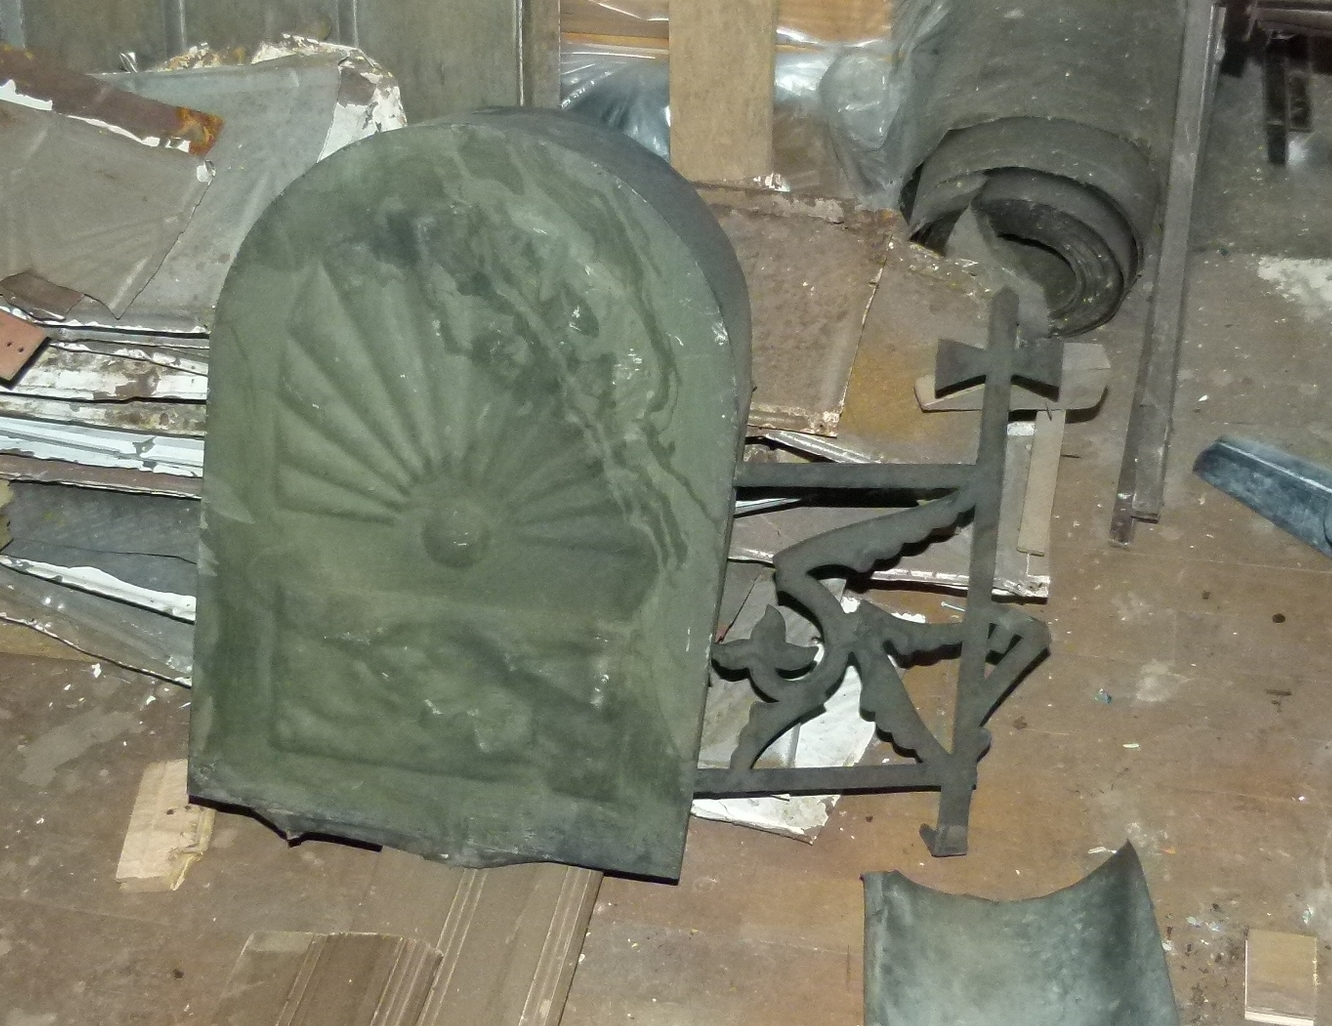 Front view of metal object found during construction at 106 Person St. in Fayetteville